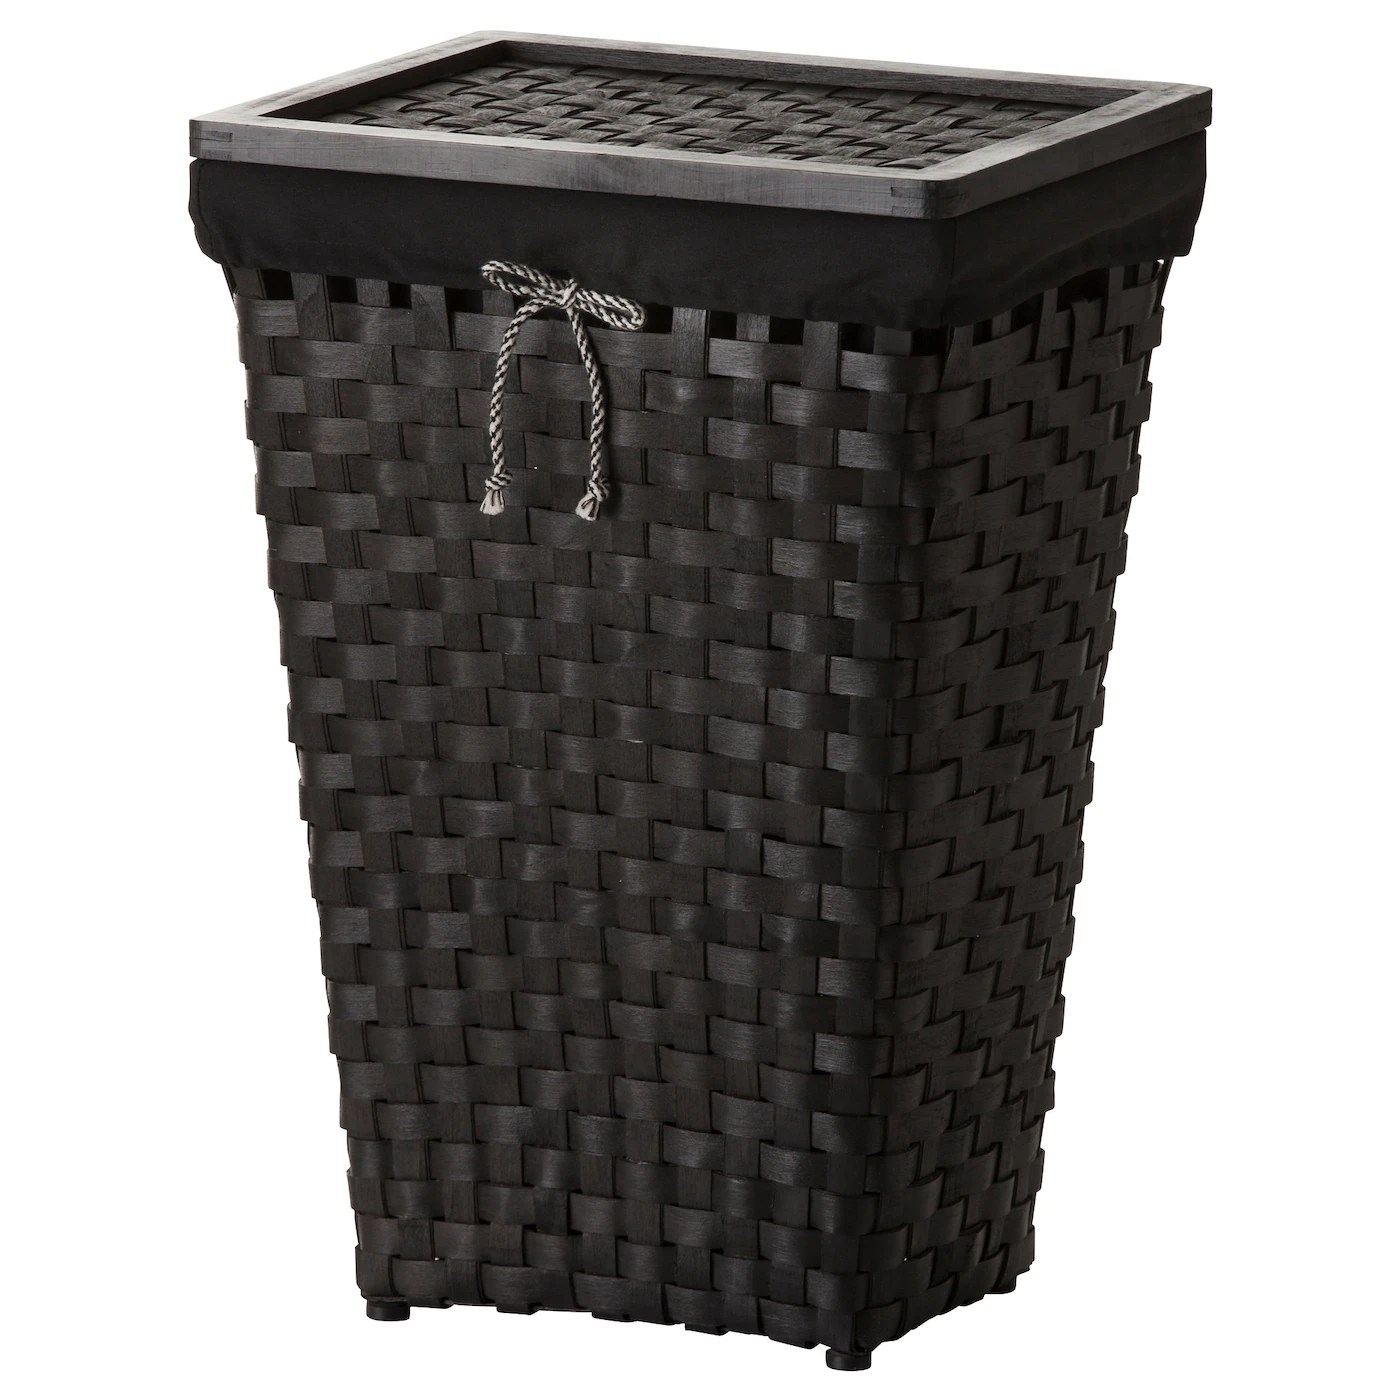 Metal Wash Bin Laundry Baskets Washing Baskets Ikea